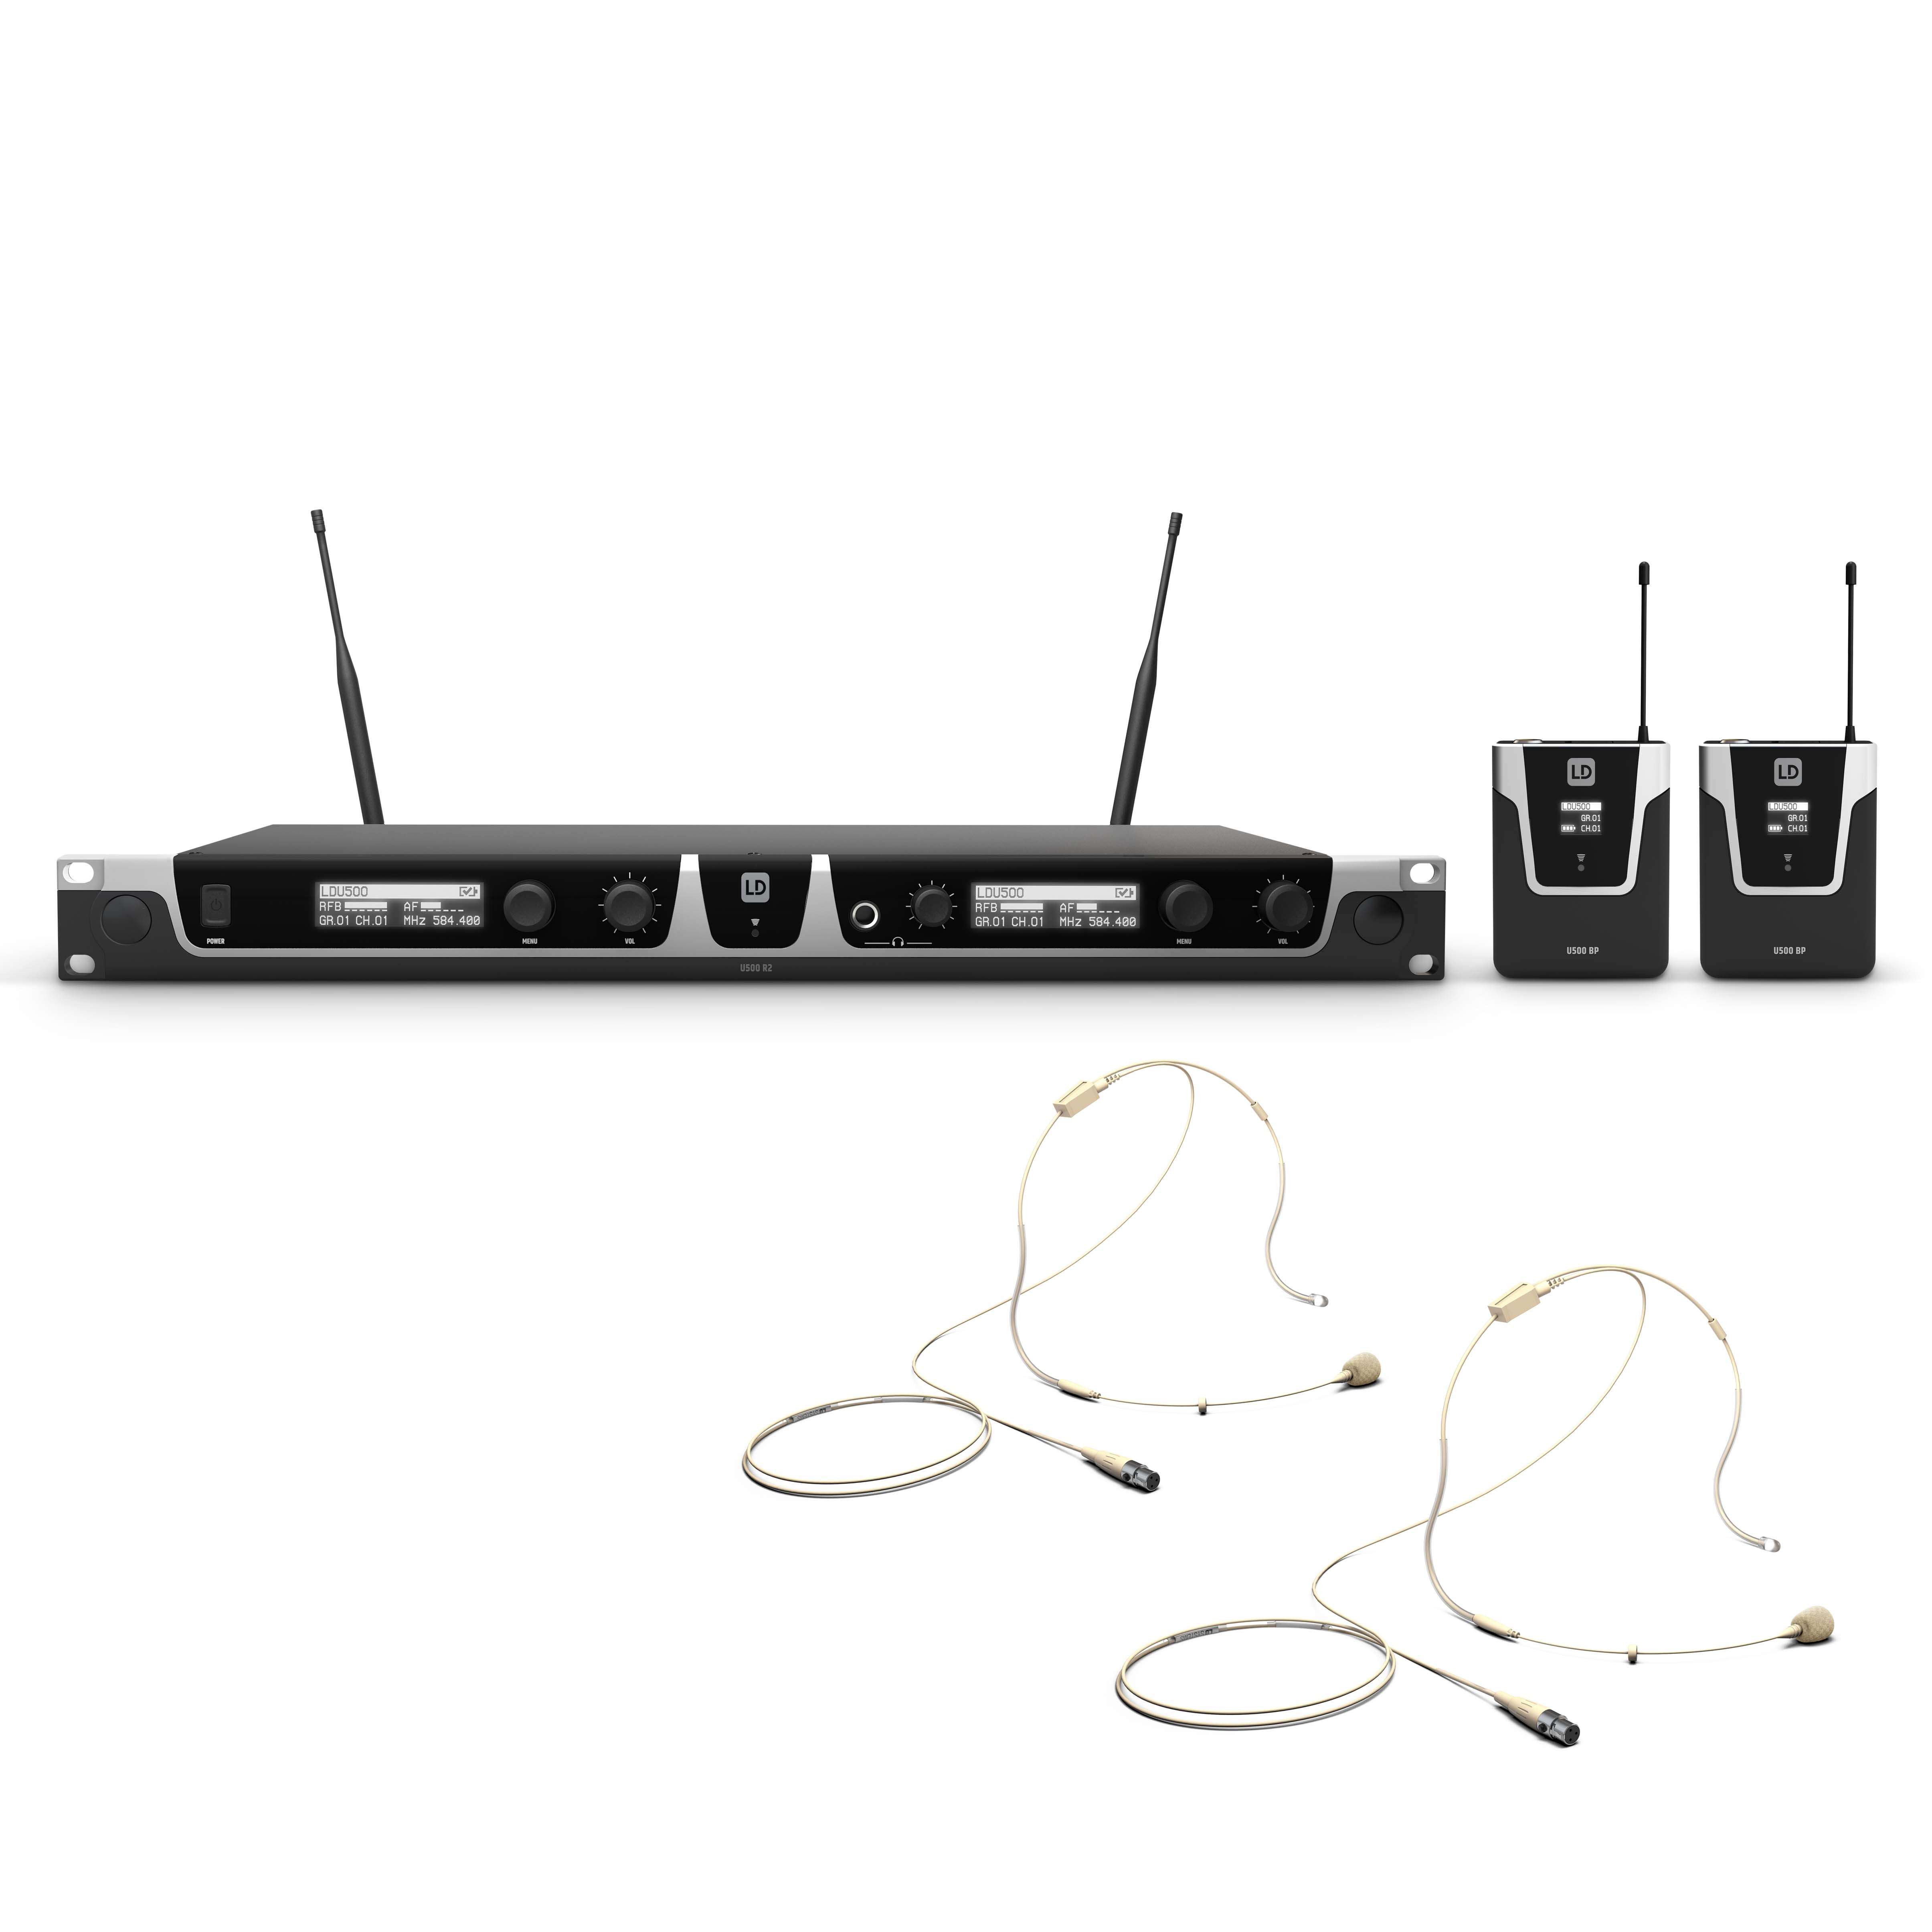 U508 BPHH 2 Wireless Microphone System with 2 x  Bodypack and 2 x Headset beige